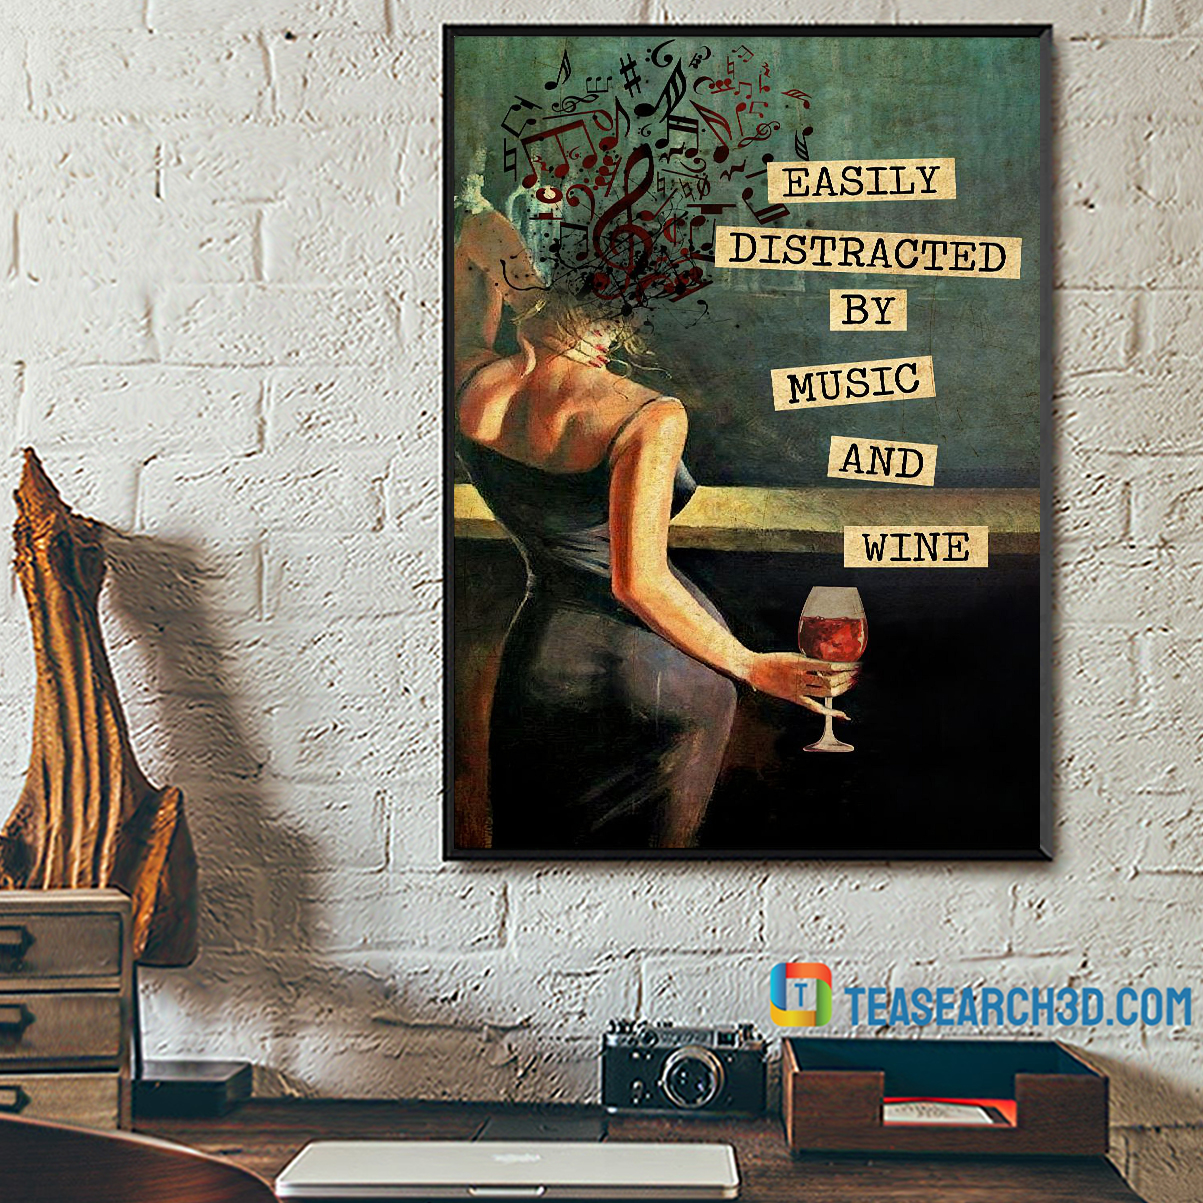 Easily distracted by music and wine vintage text poster A2